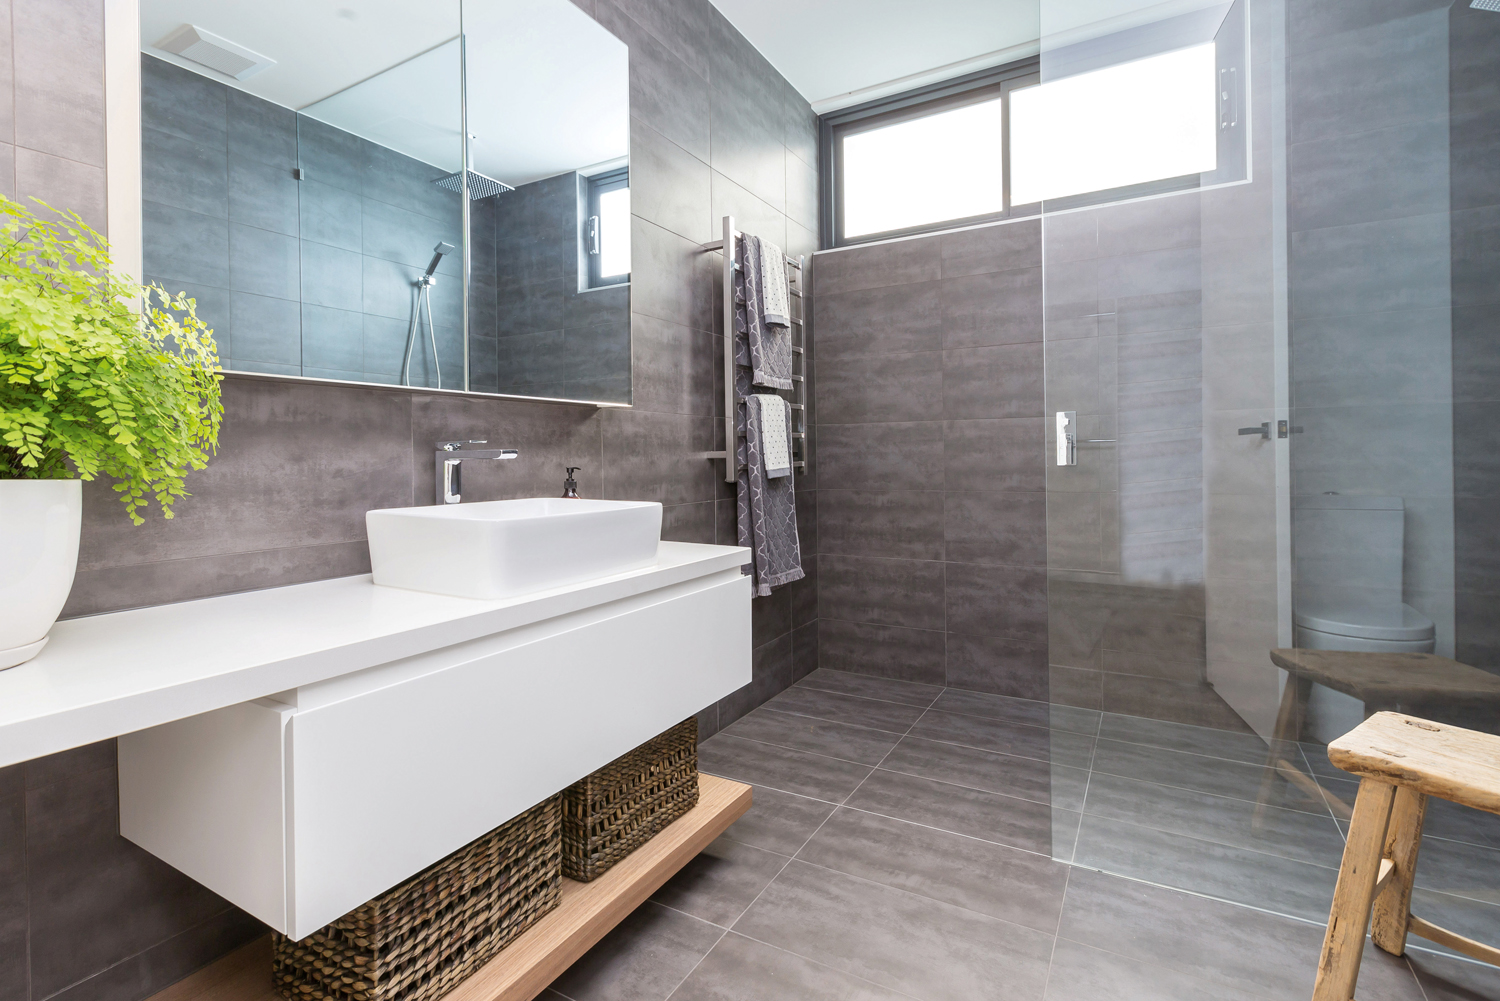 Small space, big bathroom - Completehome on Bathroom Ideas Small Spaces  id=76468